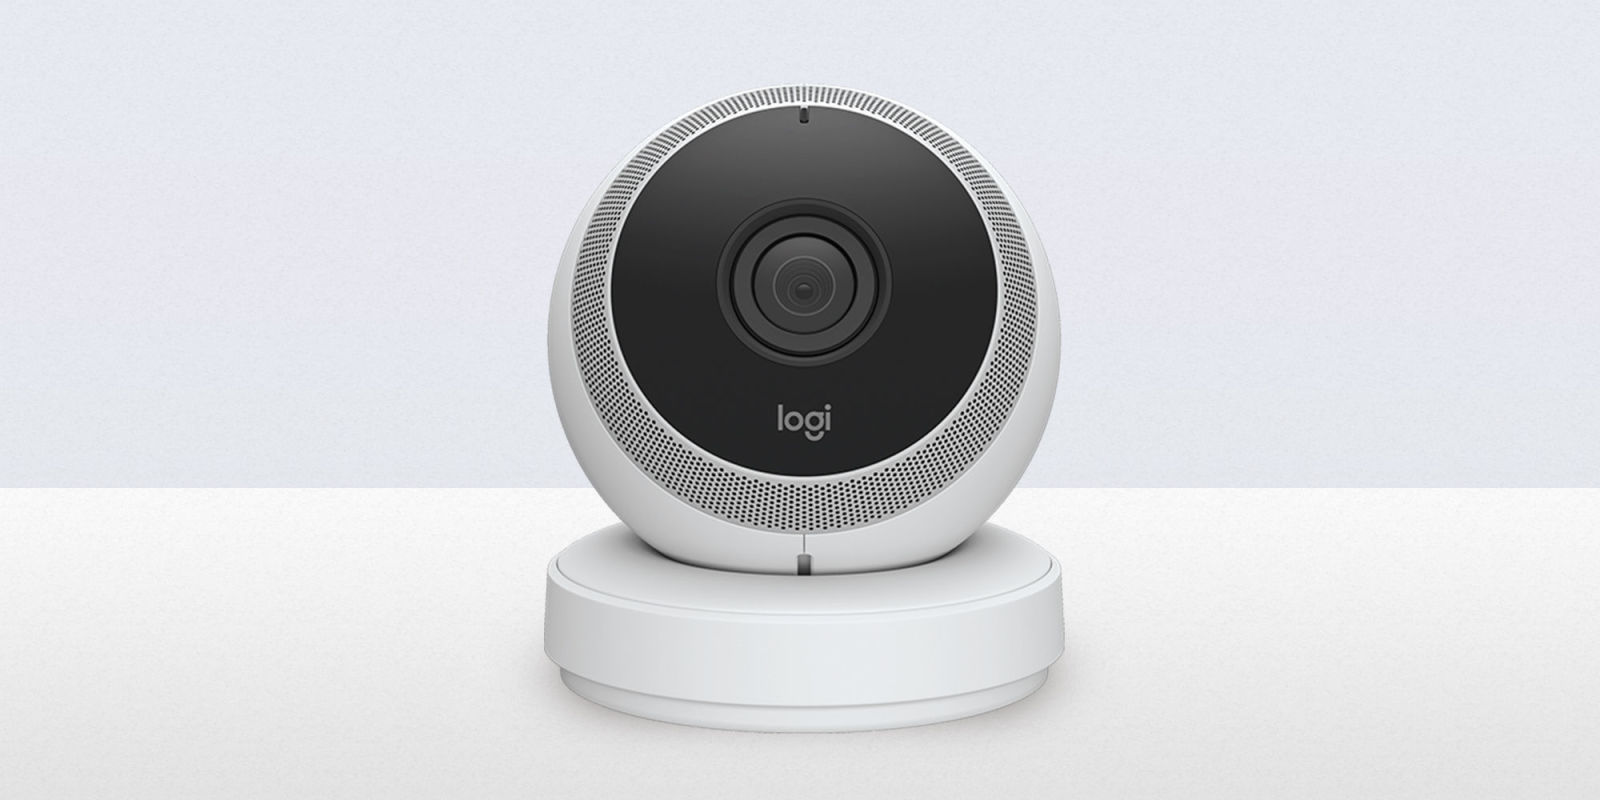 11 Best WiFi Security Cameras - Top Rated Home Security Cameras ...